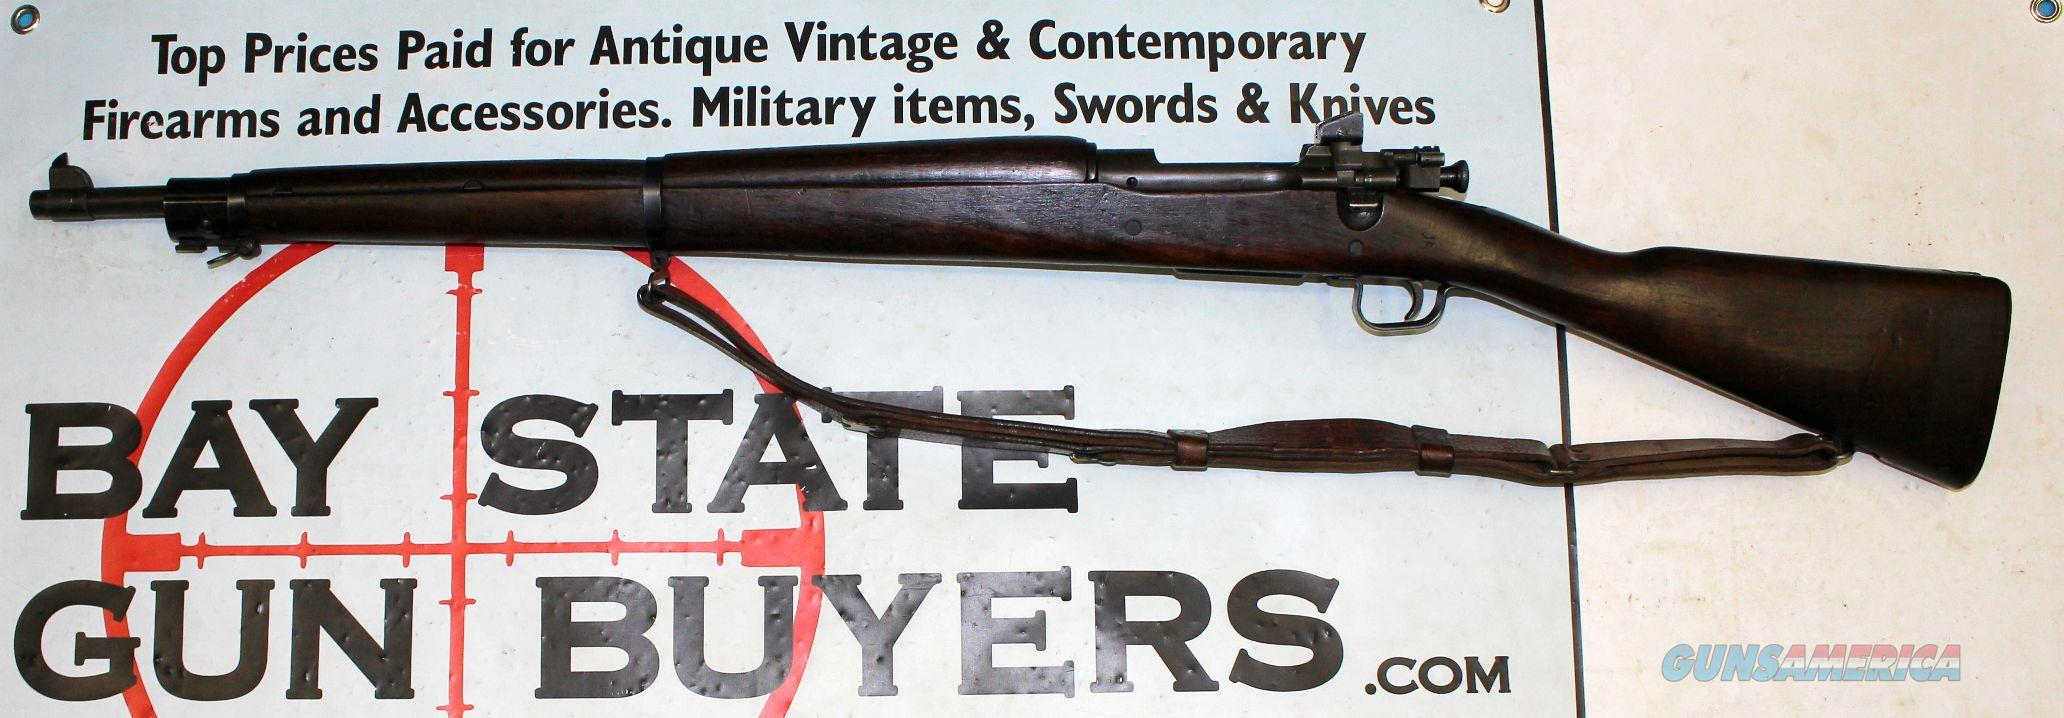 Remington Model 03 A3 WWII Military Rifle - ORIGINAL CONDITION   Guns > Rifles > Military Misc. Rifles US > 1903 Springfield/Variants